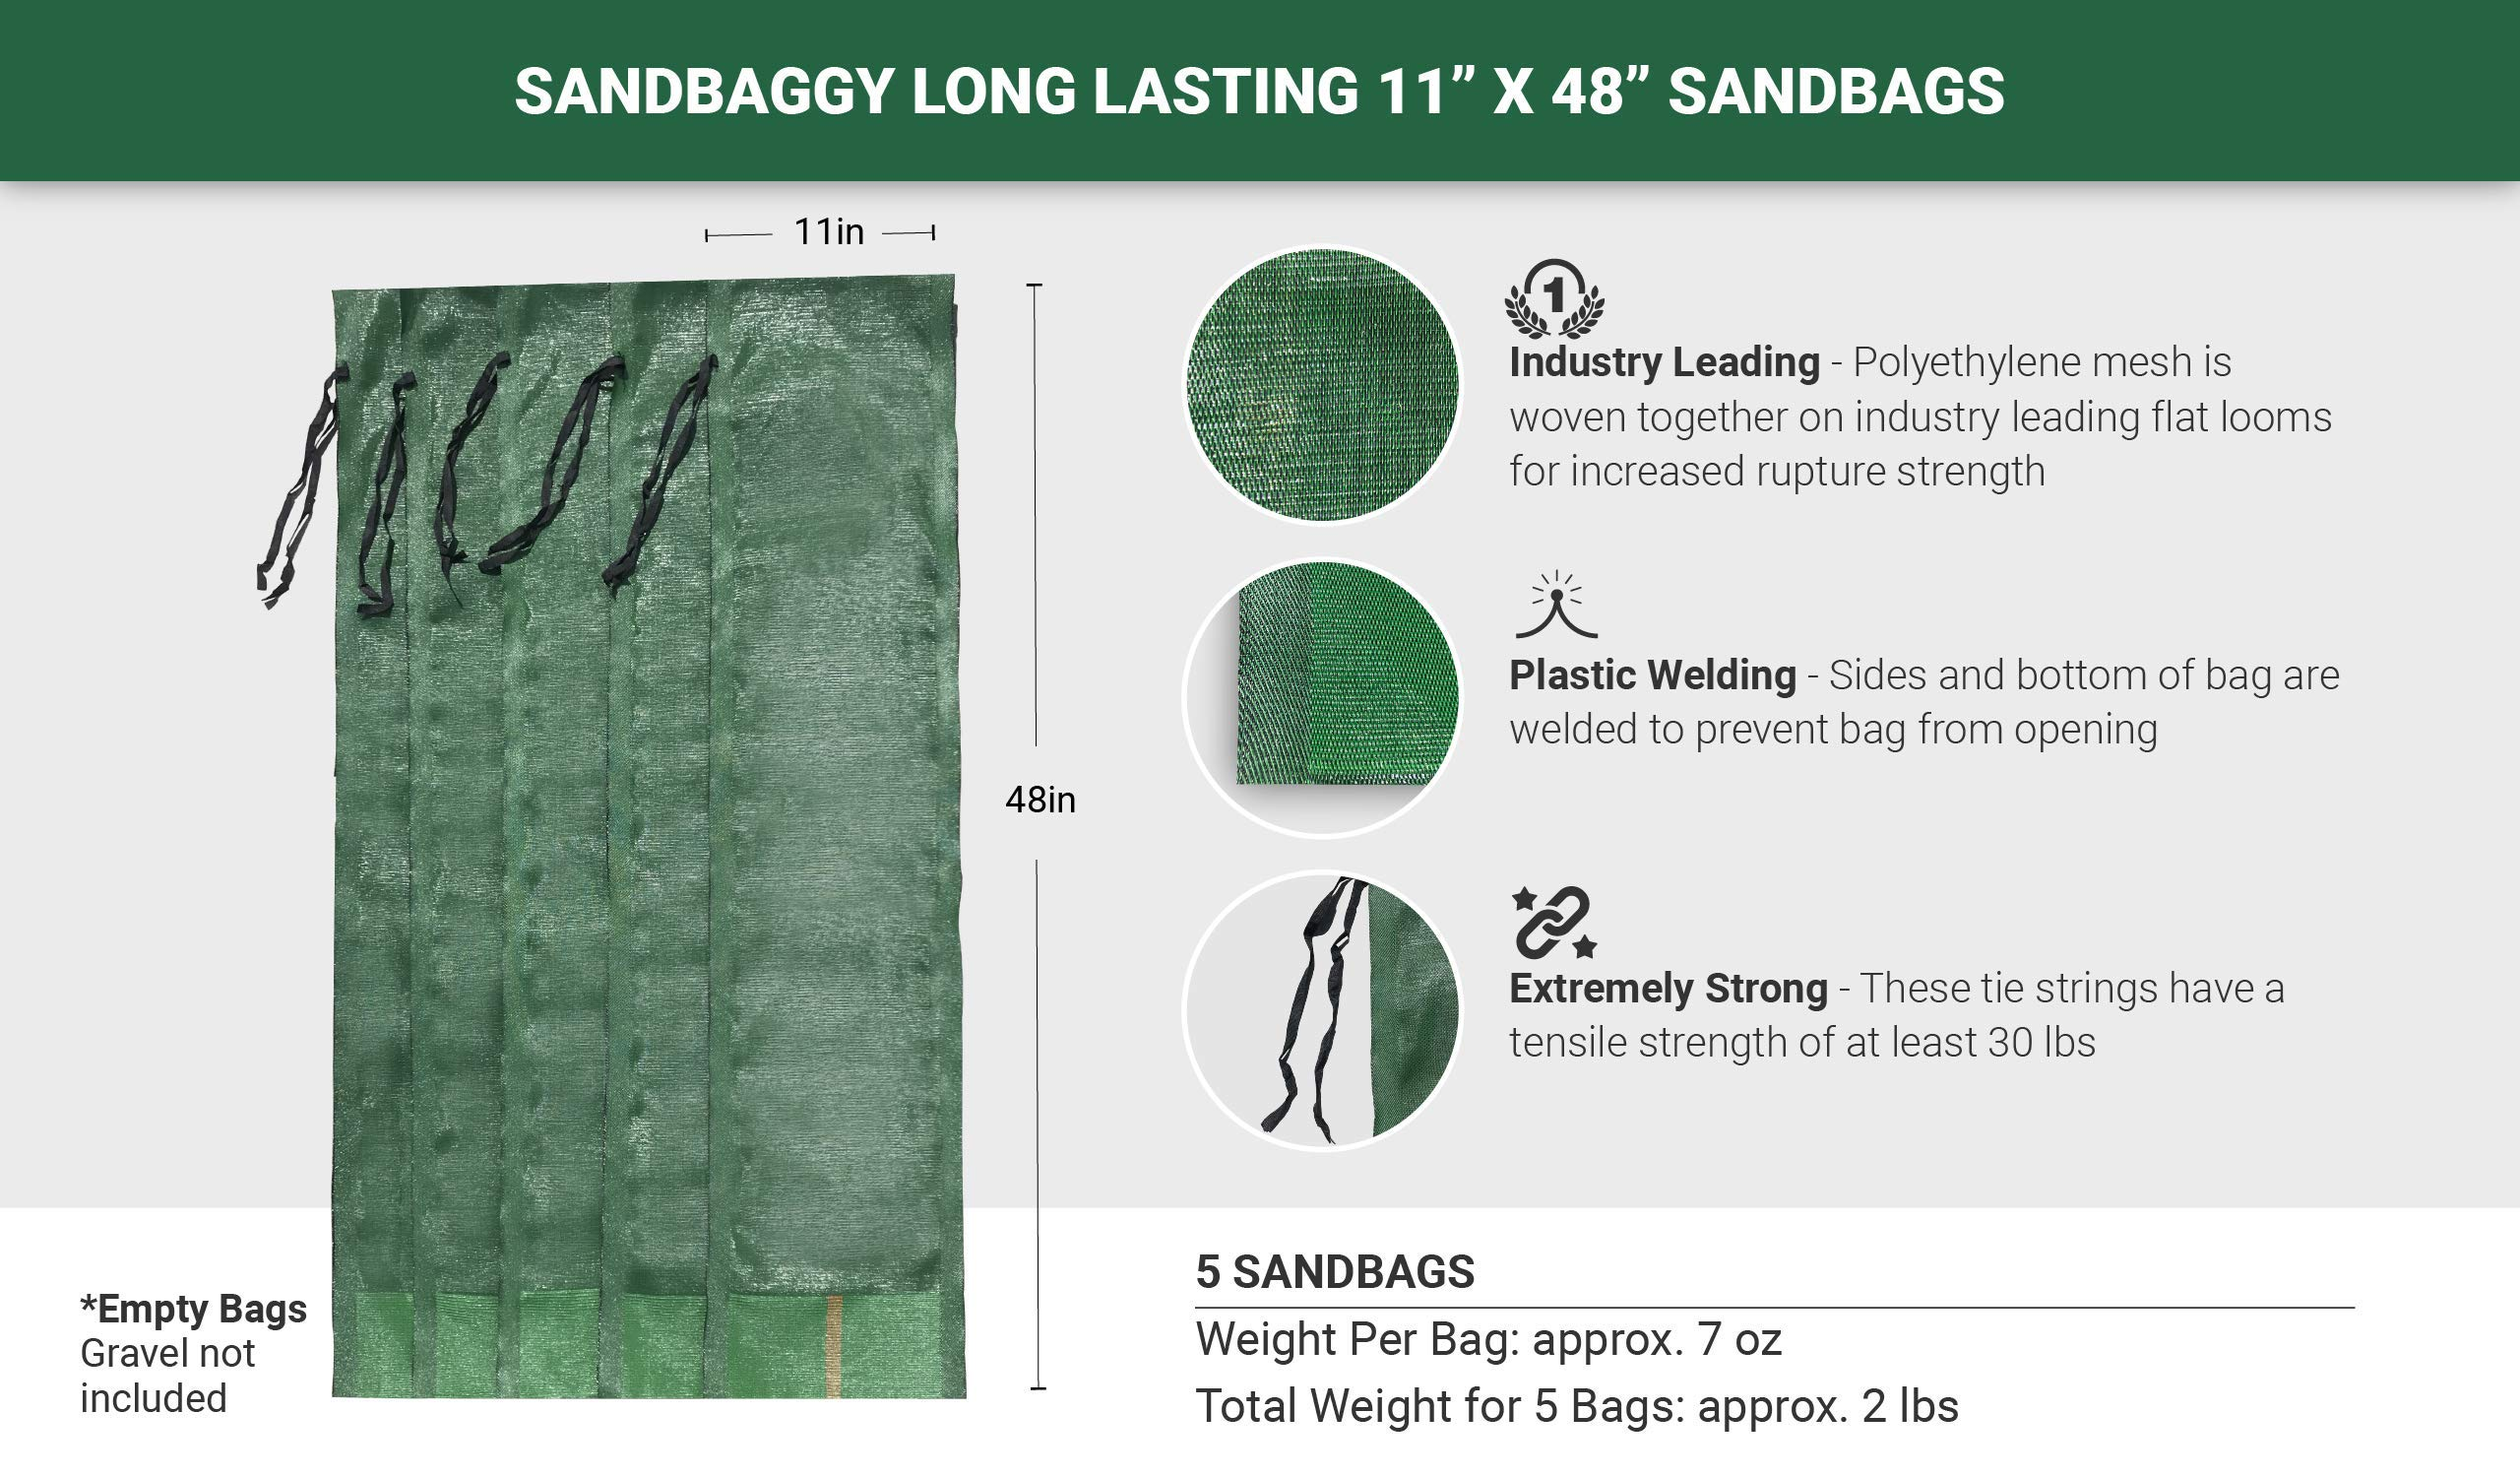 Sandbaggy - 11'' x 48'' Long-Lasting Sandbags - Lasts 1-2 Yrs - Sandbags for Flooding - Monofilament - Sand Bag - Flood Water Barrier - Water Curb - Tent Sandbags - Store Bags (Pack of 5)